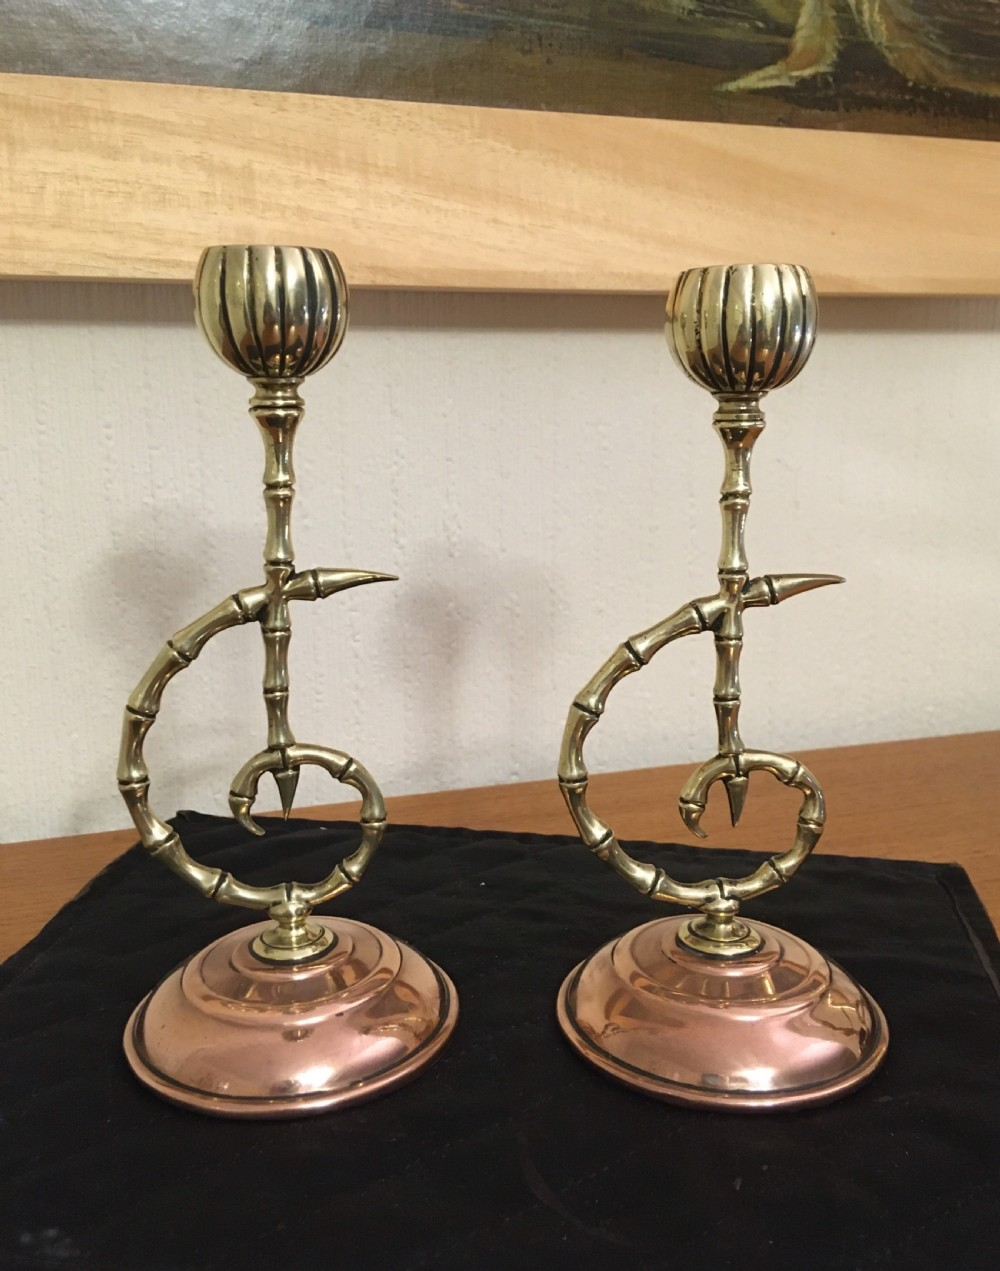 aesthetic movement townsend co candlesticks